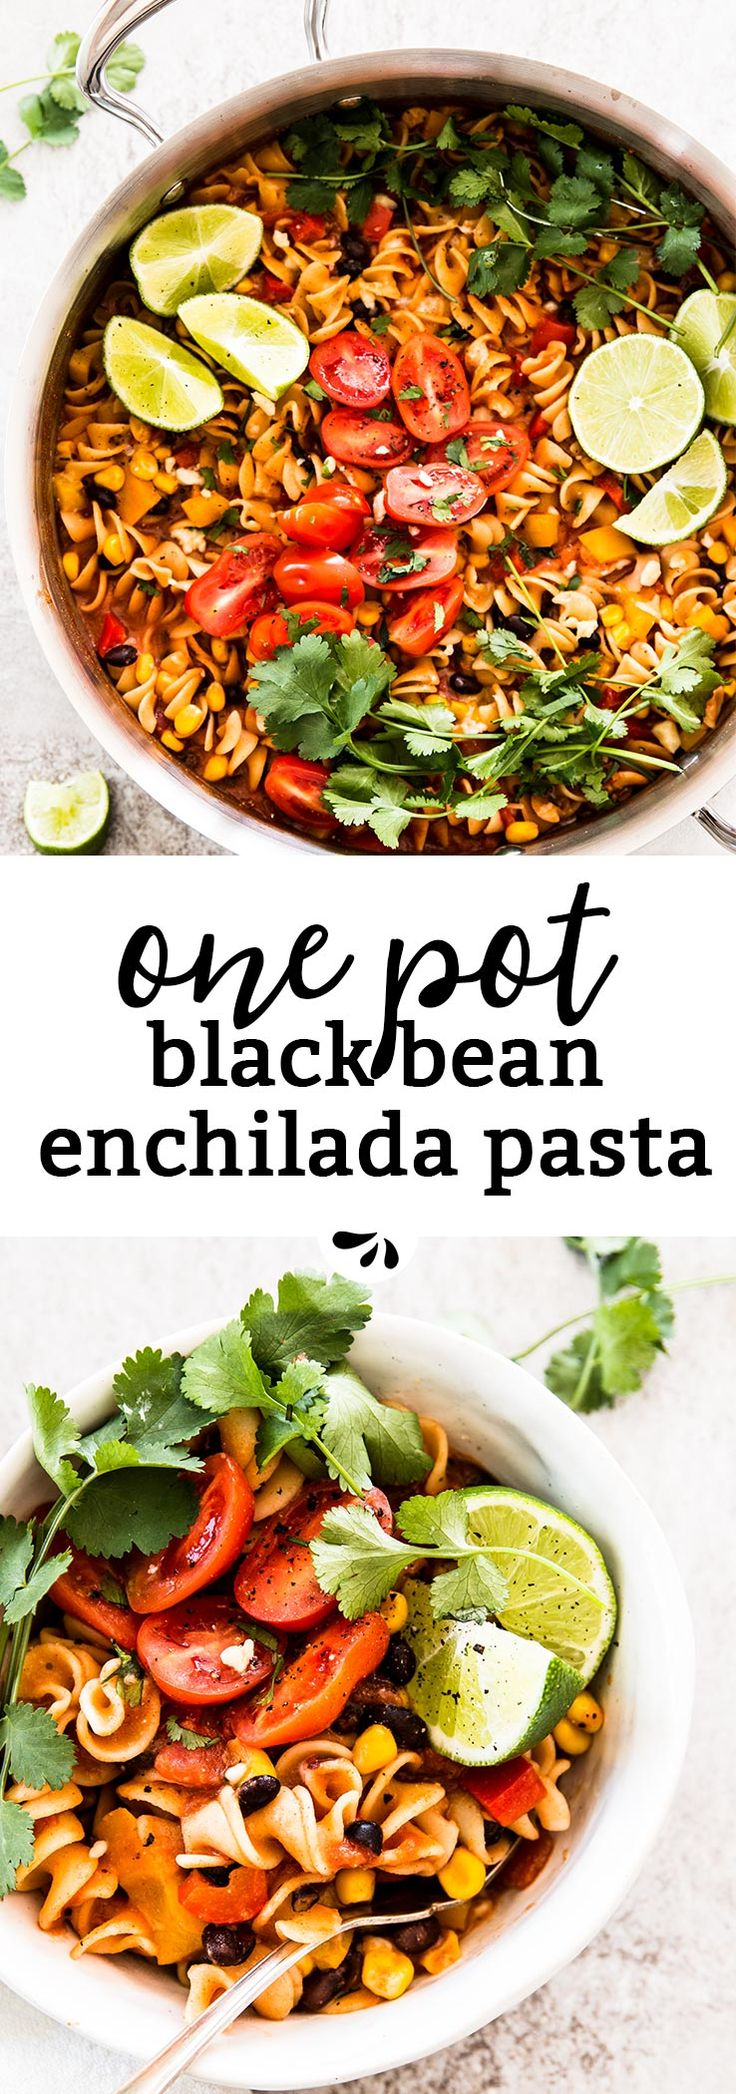 One Pot Black Bean Enchilada Pasta is an easy vegetarian one dish recipe you can make for lunch or dinner. My kids love it, so I'm sure your family will be all over it, too! It's simple to make with hardly and prep and is on the table in less than 30 minutes. The perfect easy meal for Cinco de Mayo or anytime you feel like Mexican food without the hassle! via @savorynothings